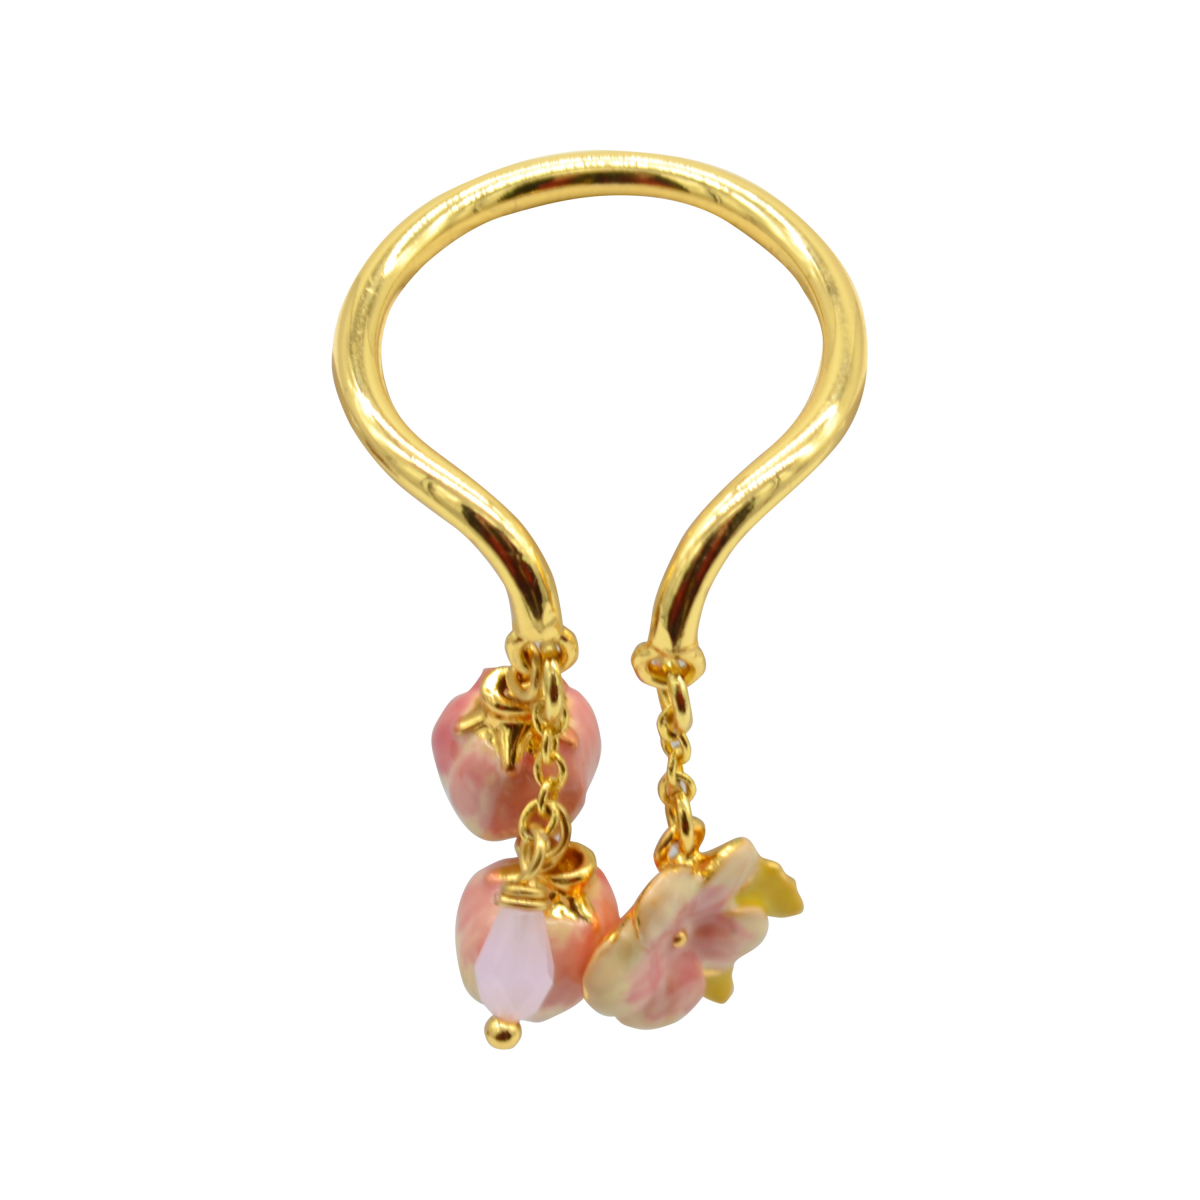 Hanging Cherry Blossom Open Ring